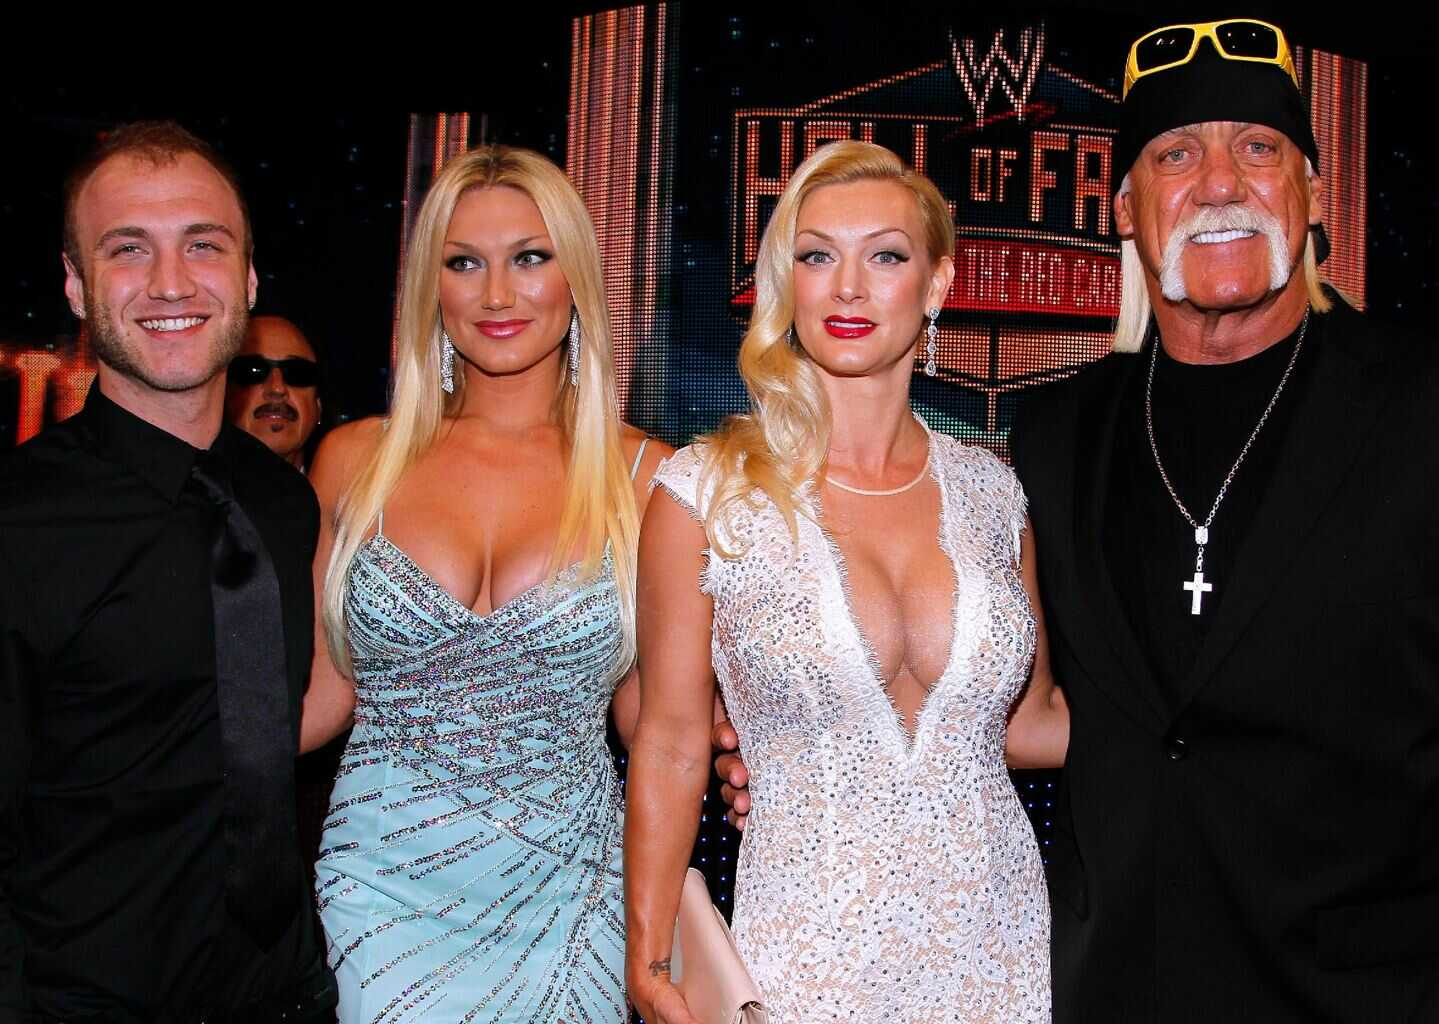 hulk hogan dating daughters friend Audio of hogan using several racial slurs while discussing his daughter brooke hogan dating an african american surfaced in july 2015 he was engaged in a lawsuit with gawker at the time for .